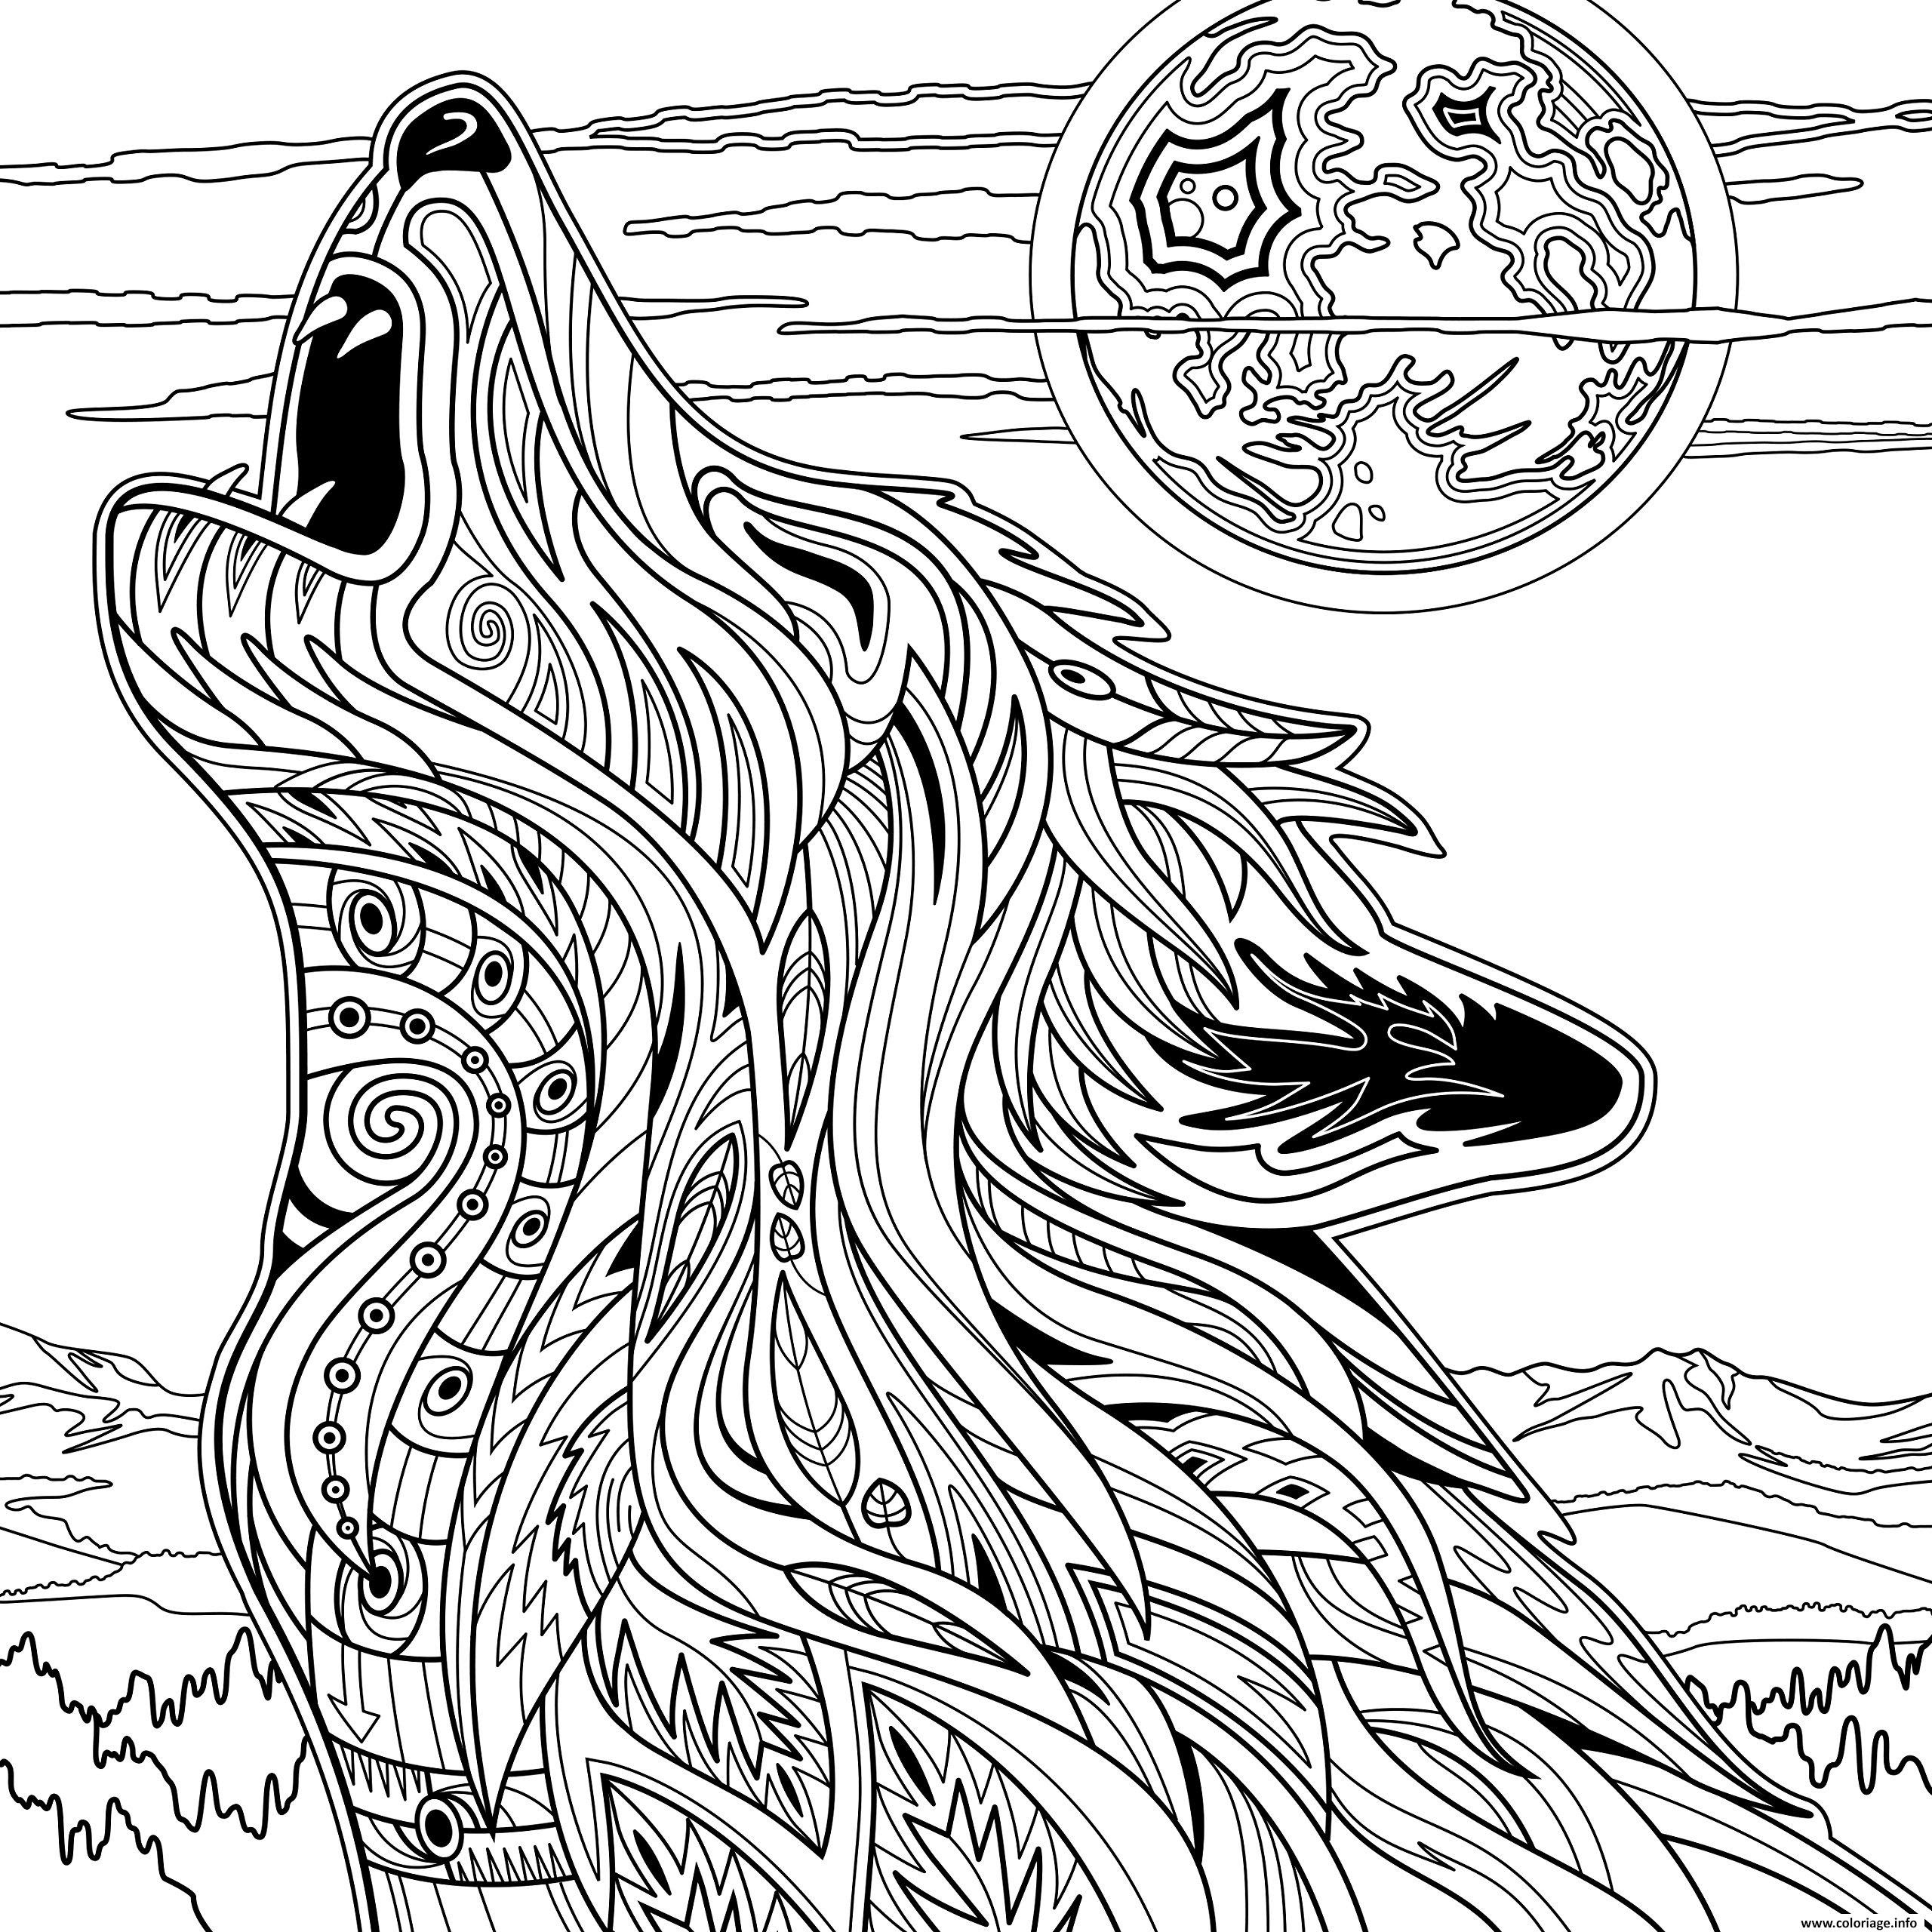 Coloriage Adulte Loup Animaux Yellowstone National Park Jecoloriecom